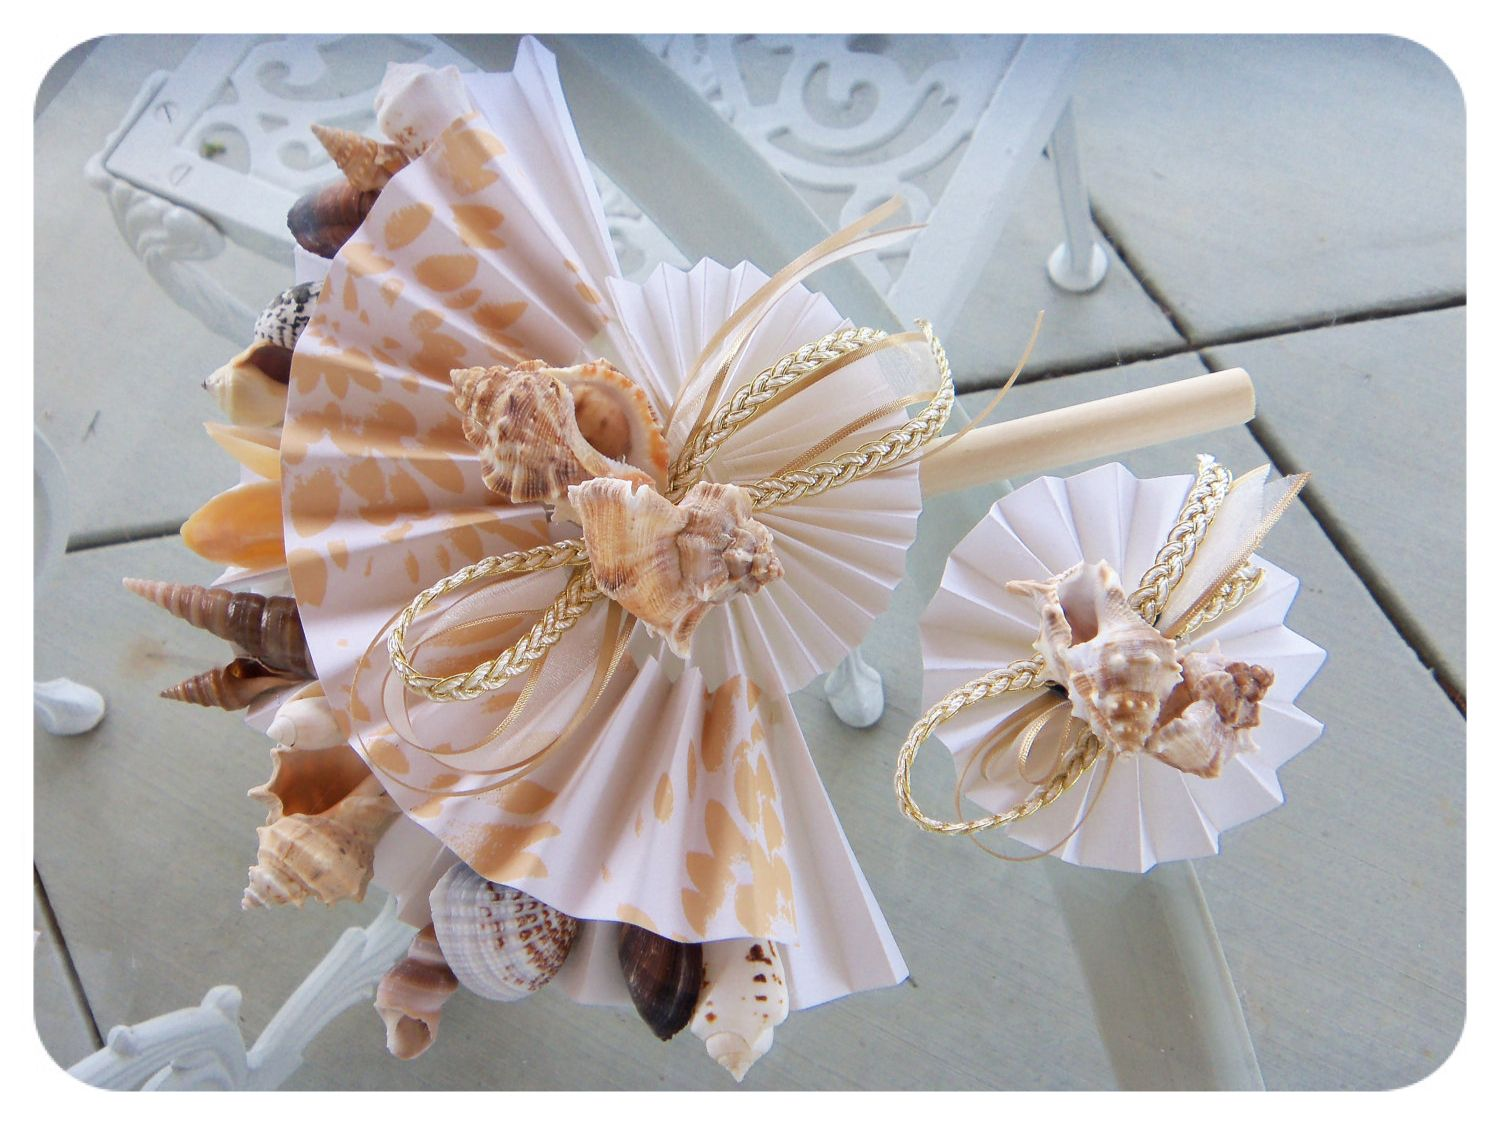 KeepSakeCenterpieces_etsy_beautiful_pretty_bridal_wedding_bouquet_destination_tropical_shells_fan_origami_seashells_sea_DIY_elegant_alternative_beach_braid_ribbon_natural_non_floral_off_beat.jpg 1.500×1.125 piksel